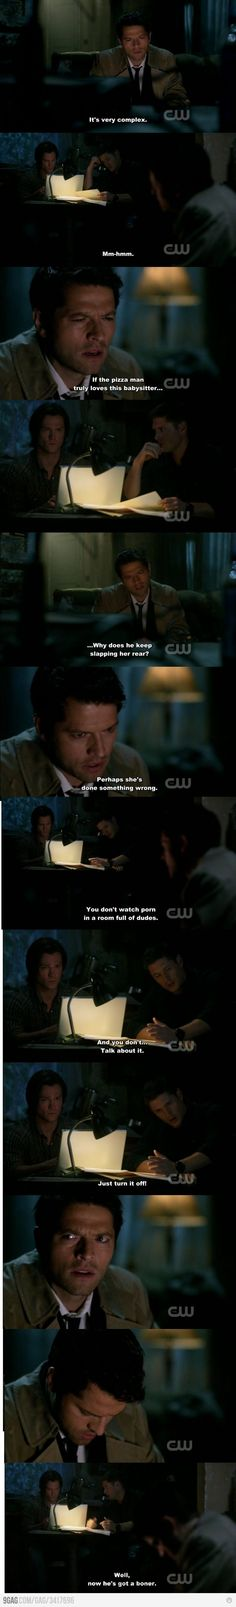 Cas doesn't understand pron either